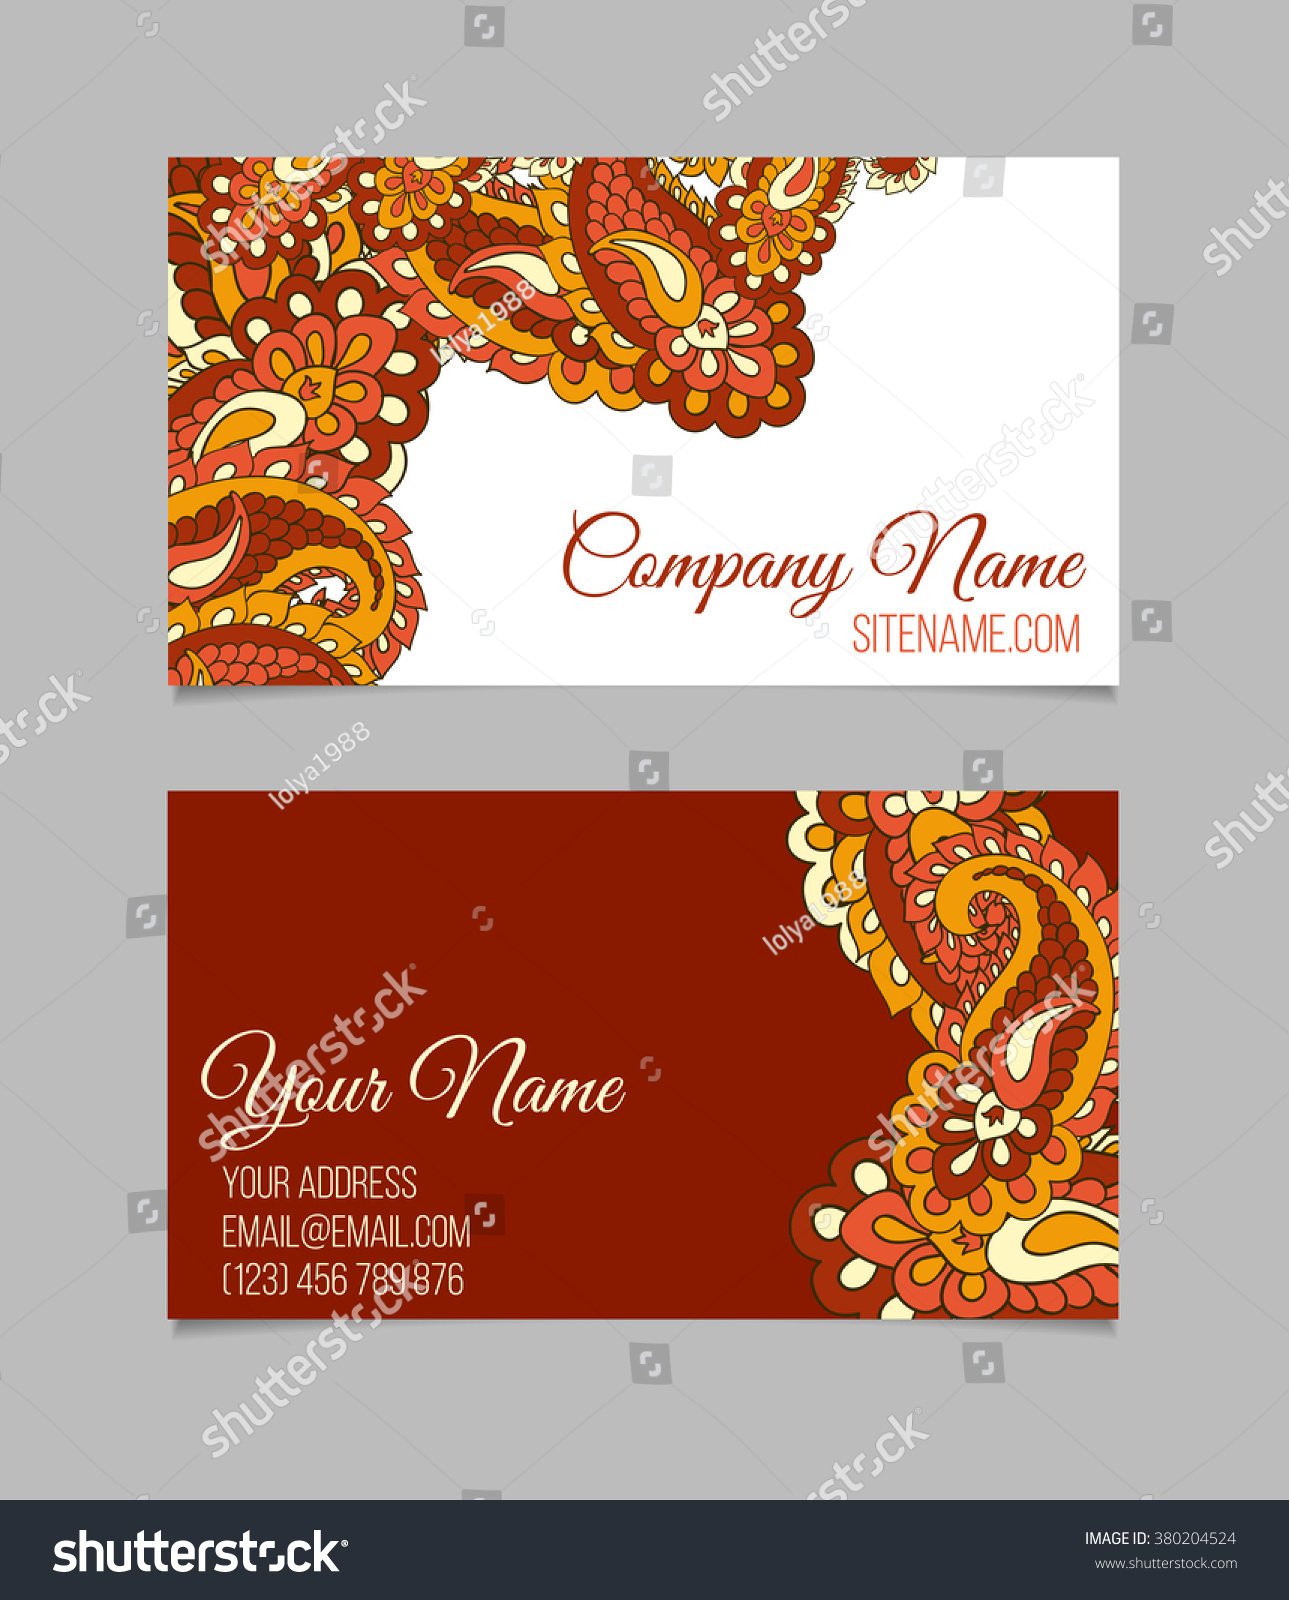 Doublesided Business Card Template Asian Paisley Stock Vector ...